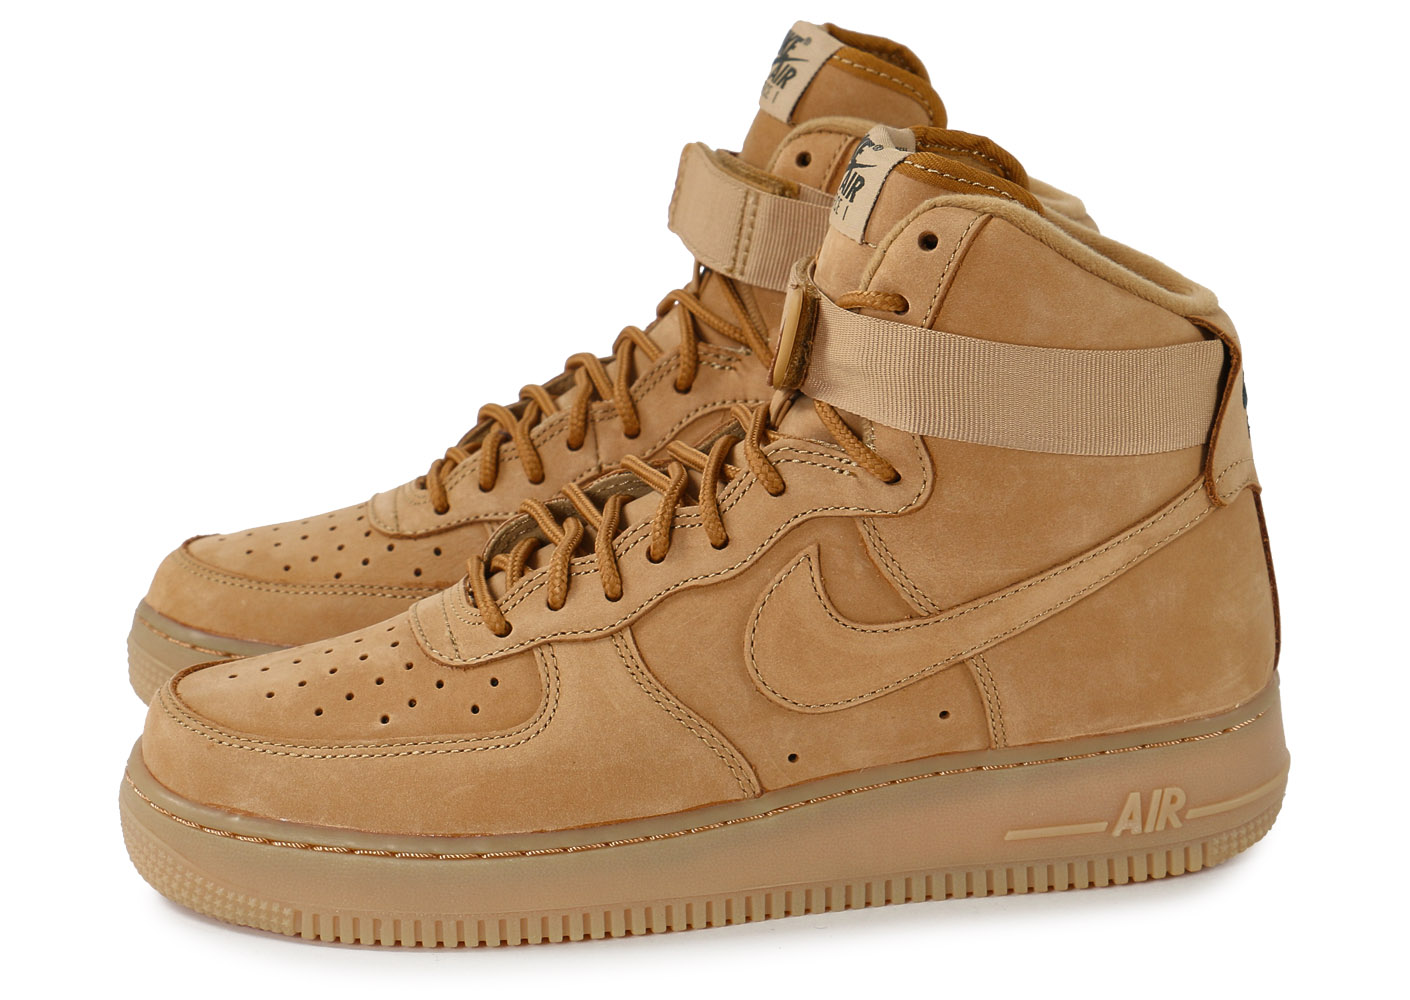 Air Force 1 High '07 Lv8 Flax